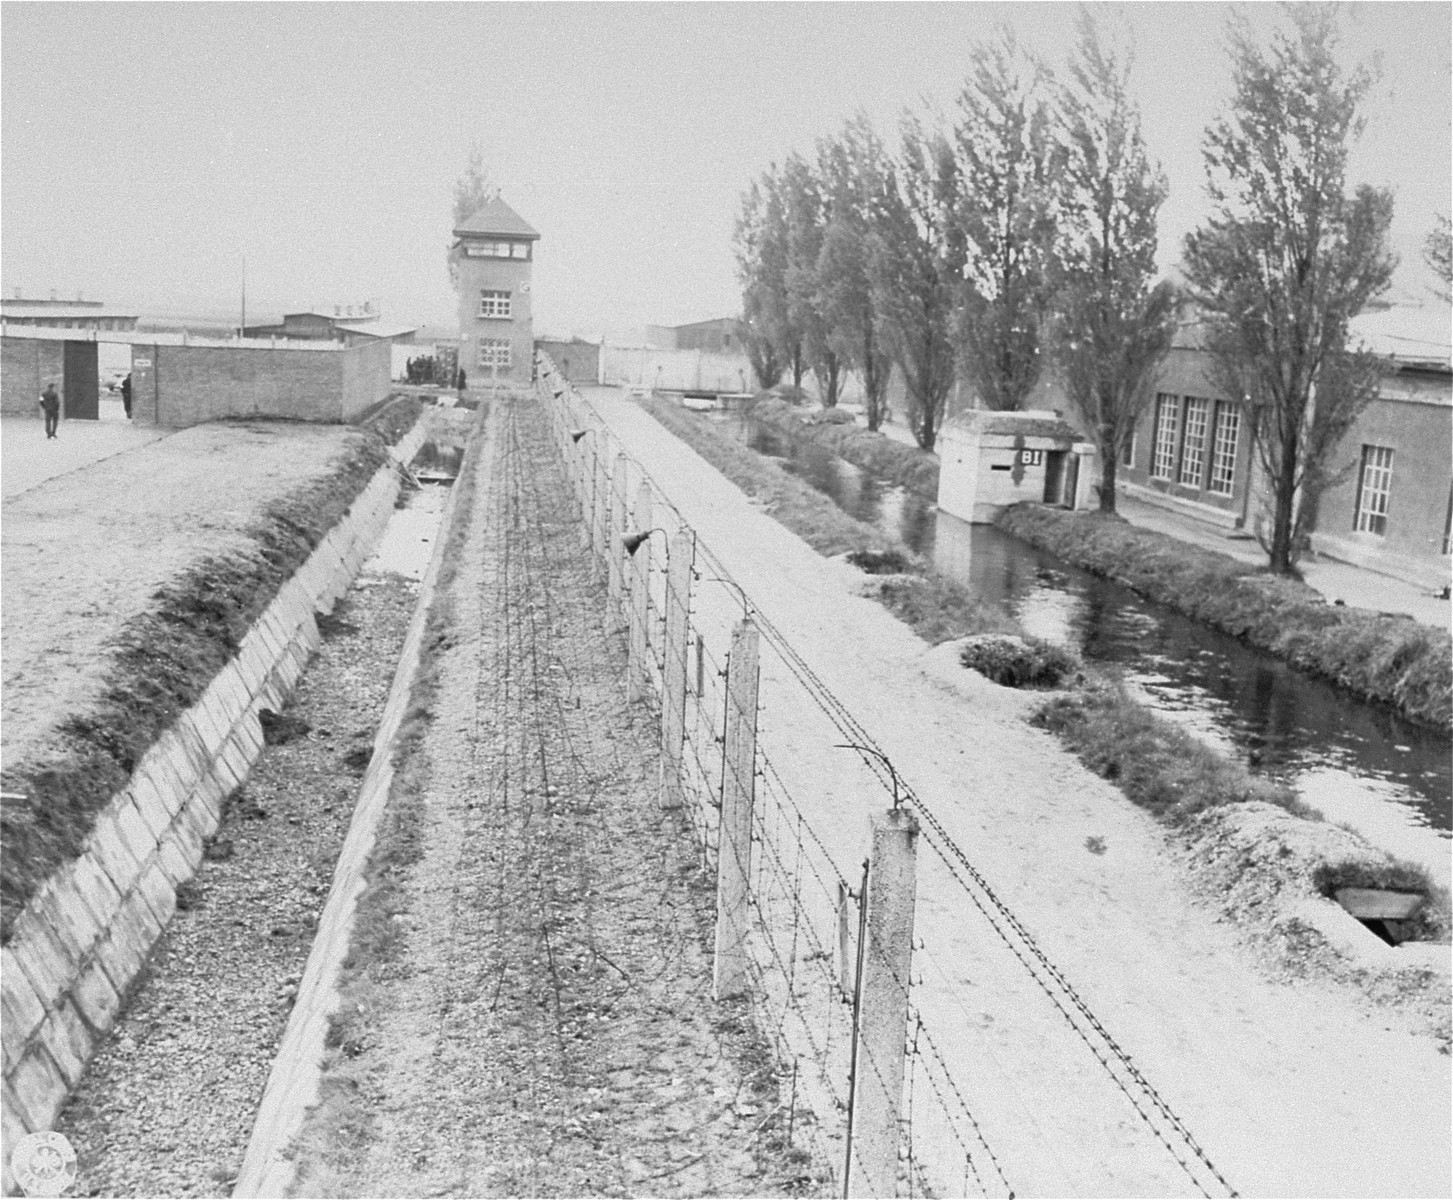 A watch tower and section of the electric fence in Dachau.